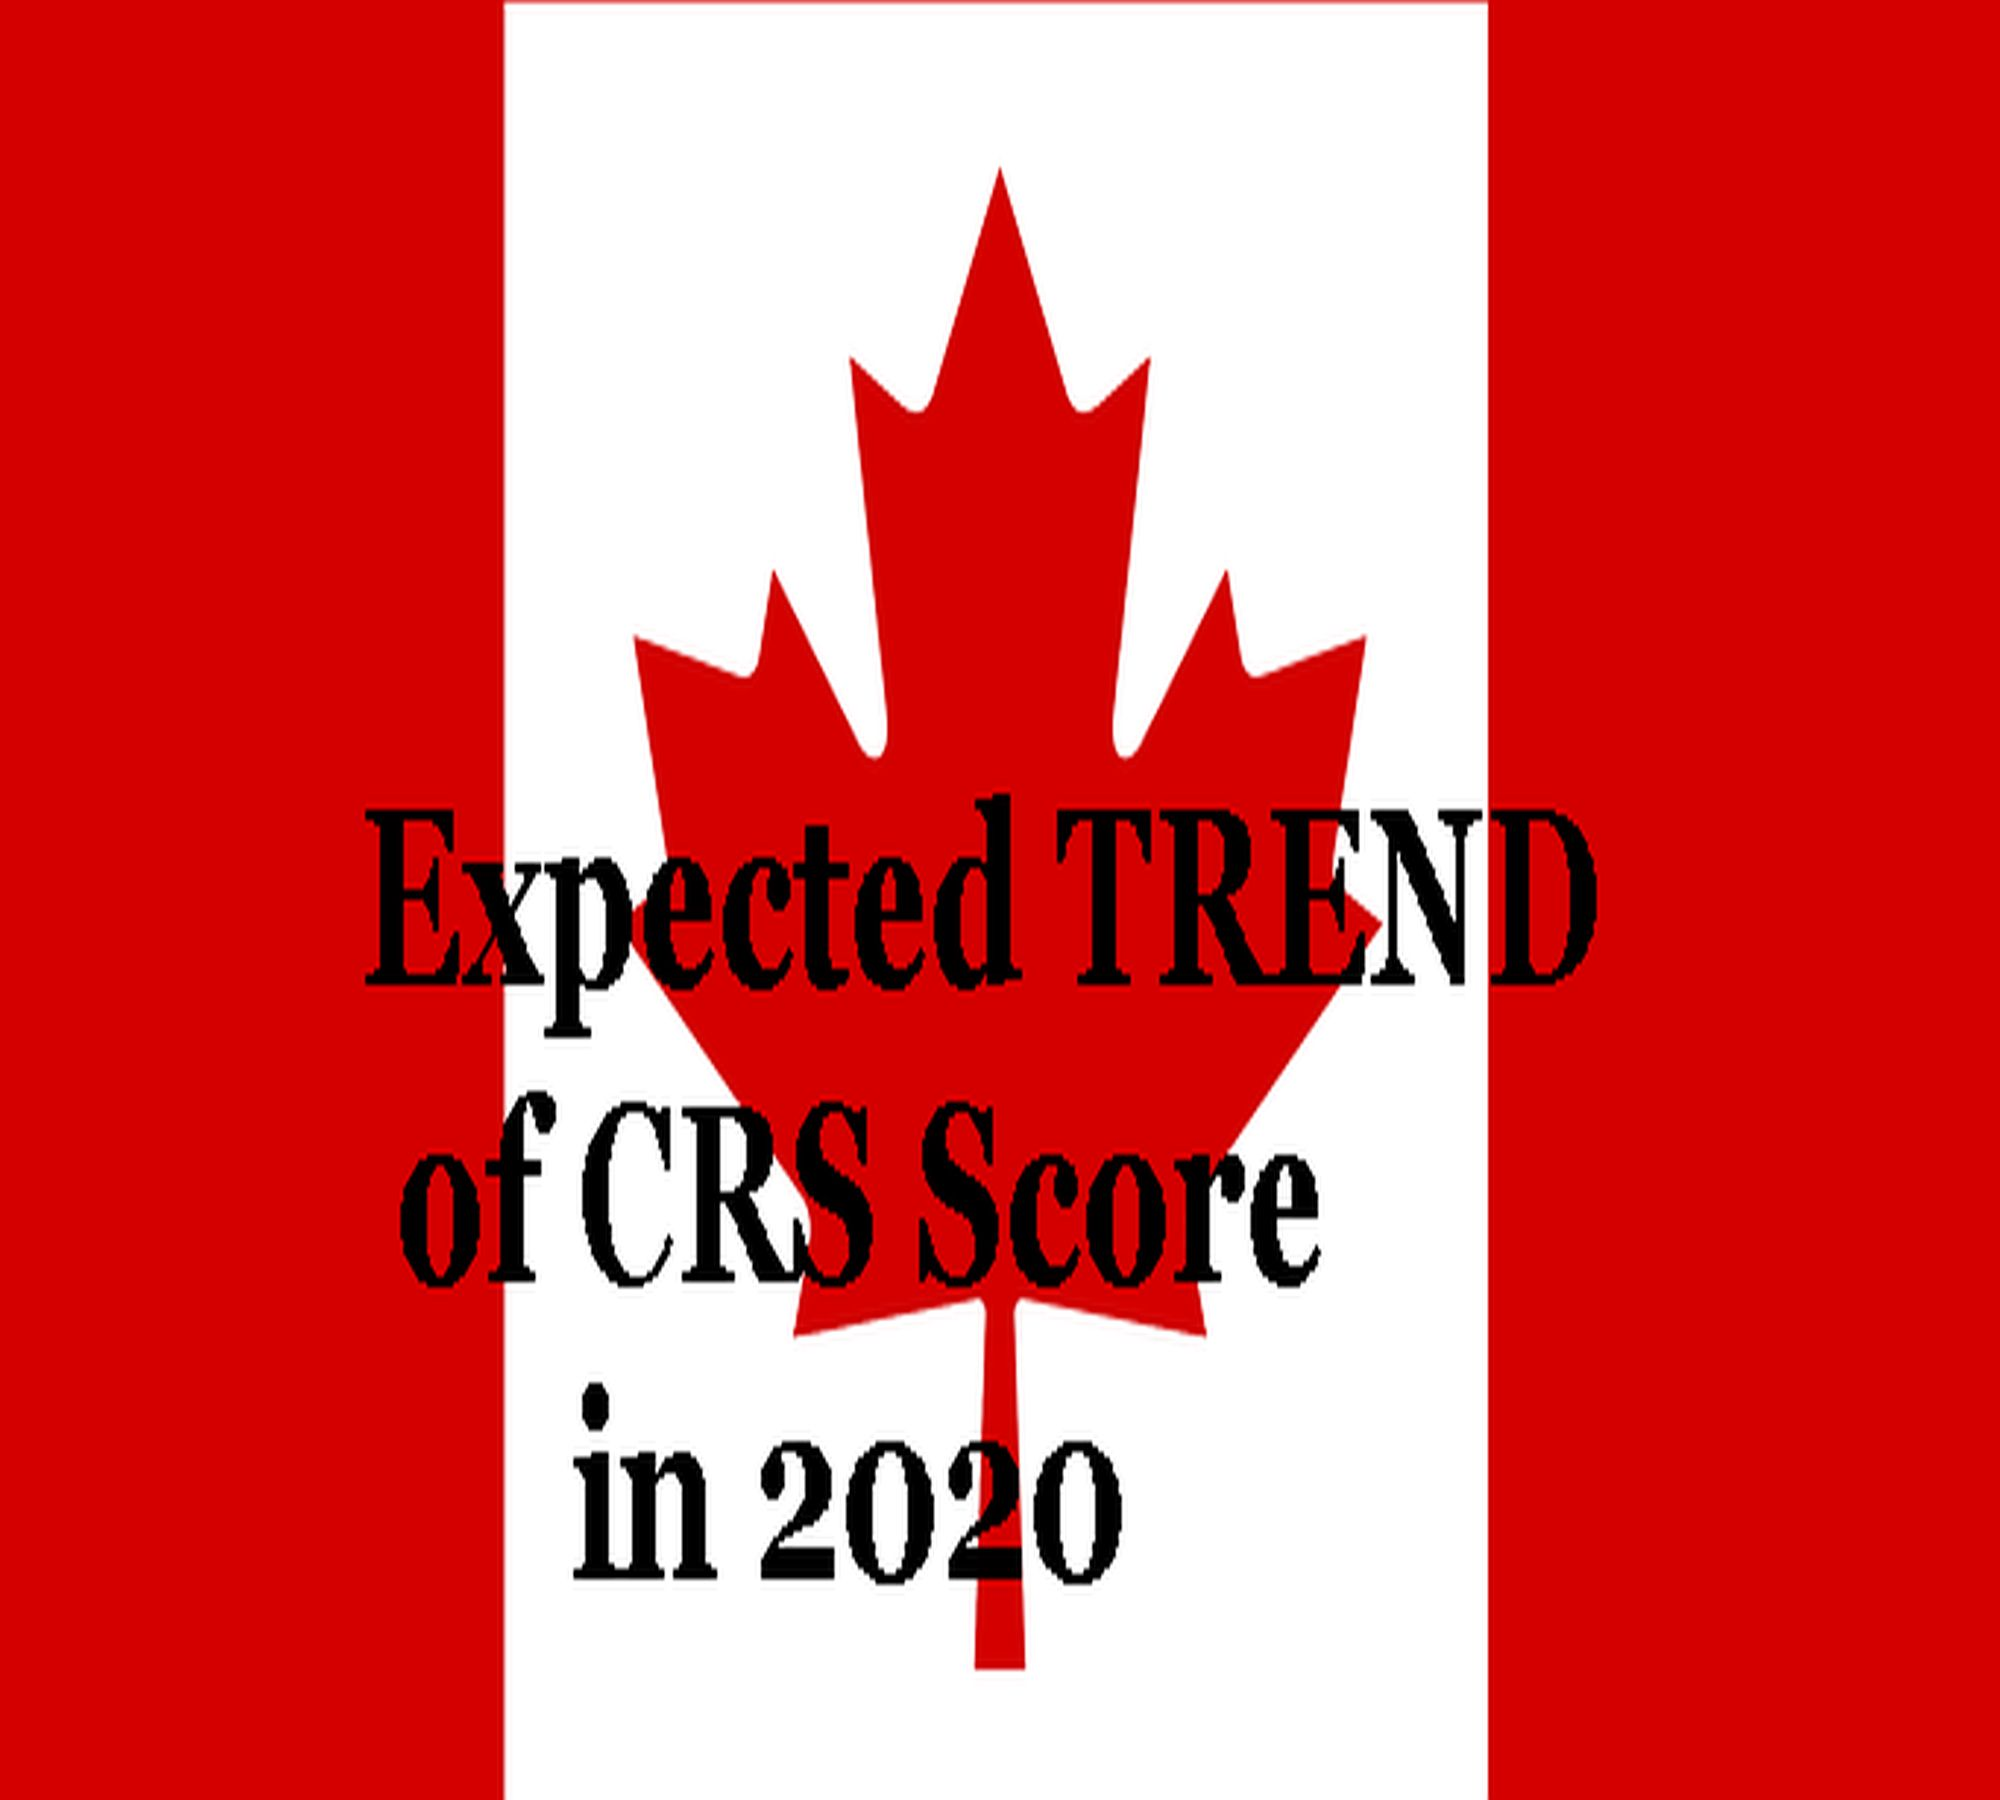 Expected Trend of CRS Score in 2020